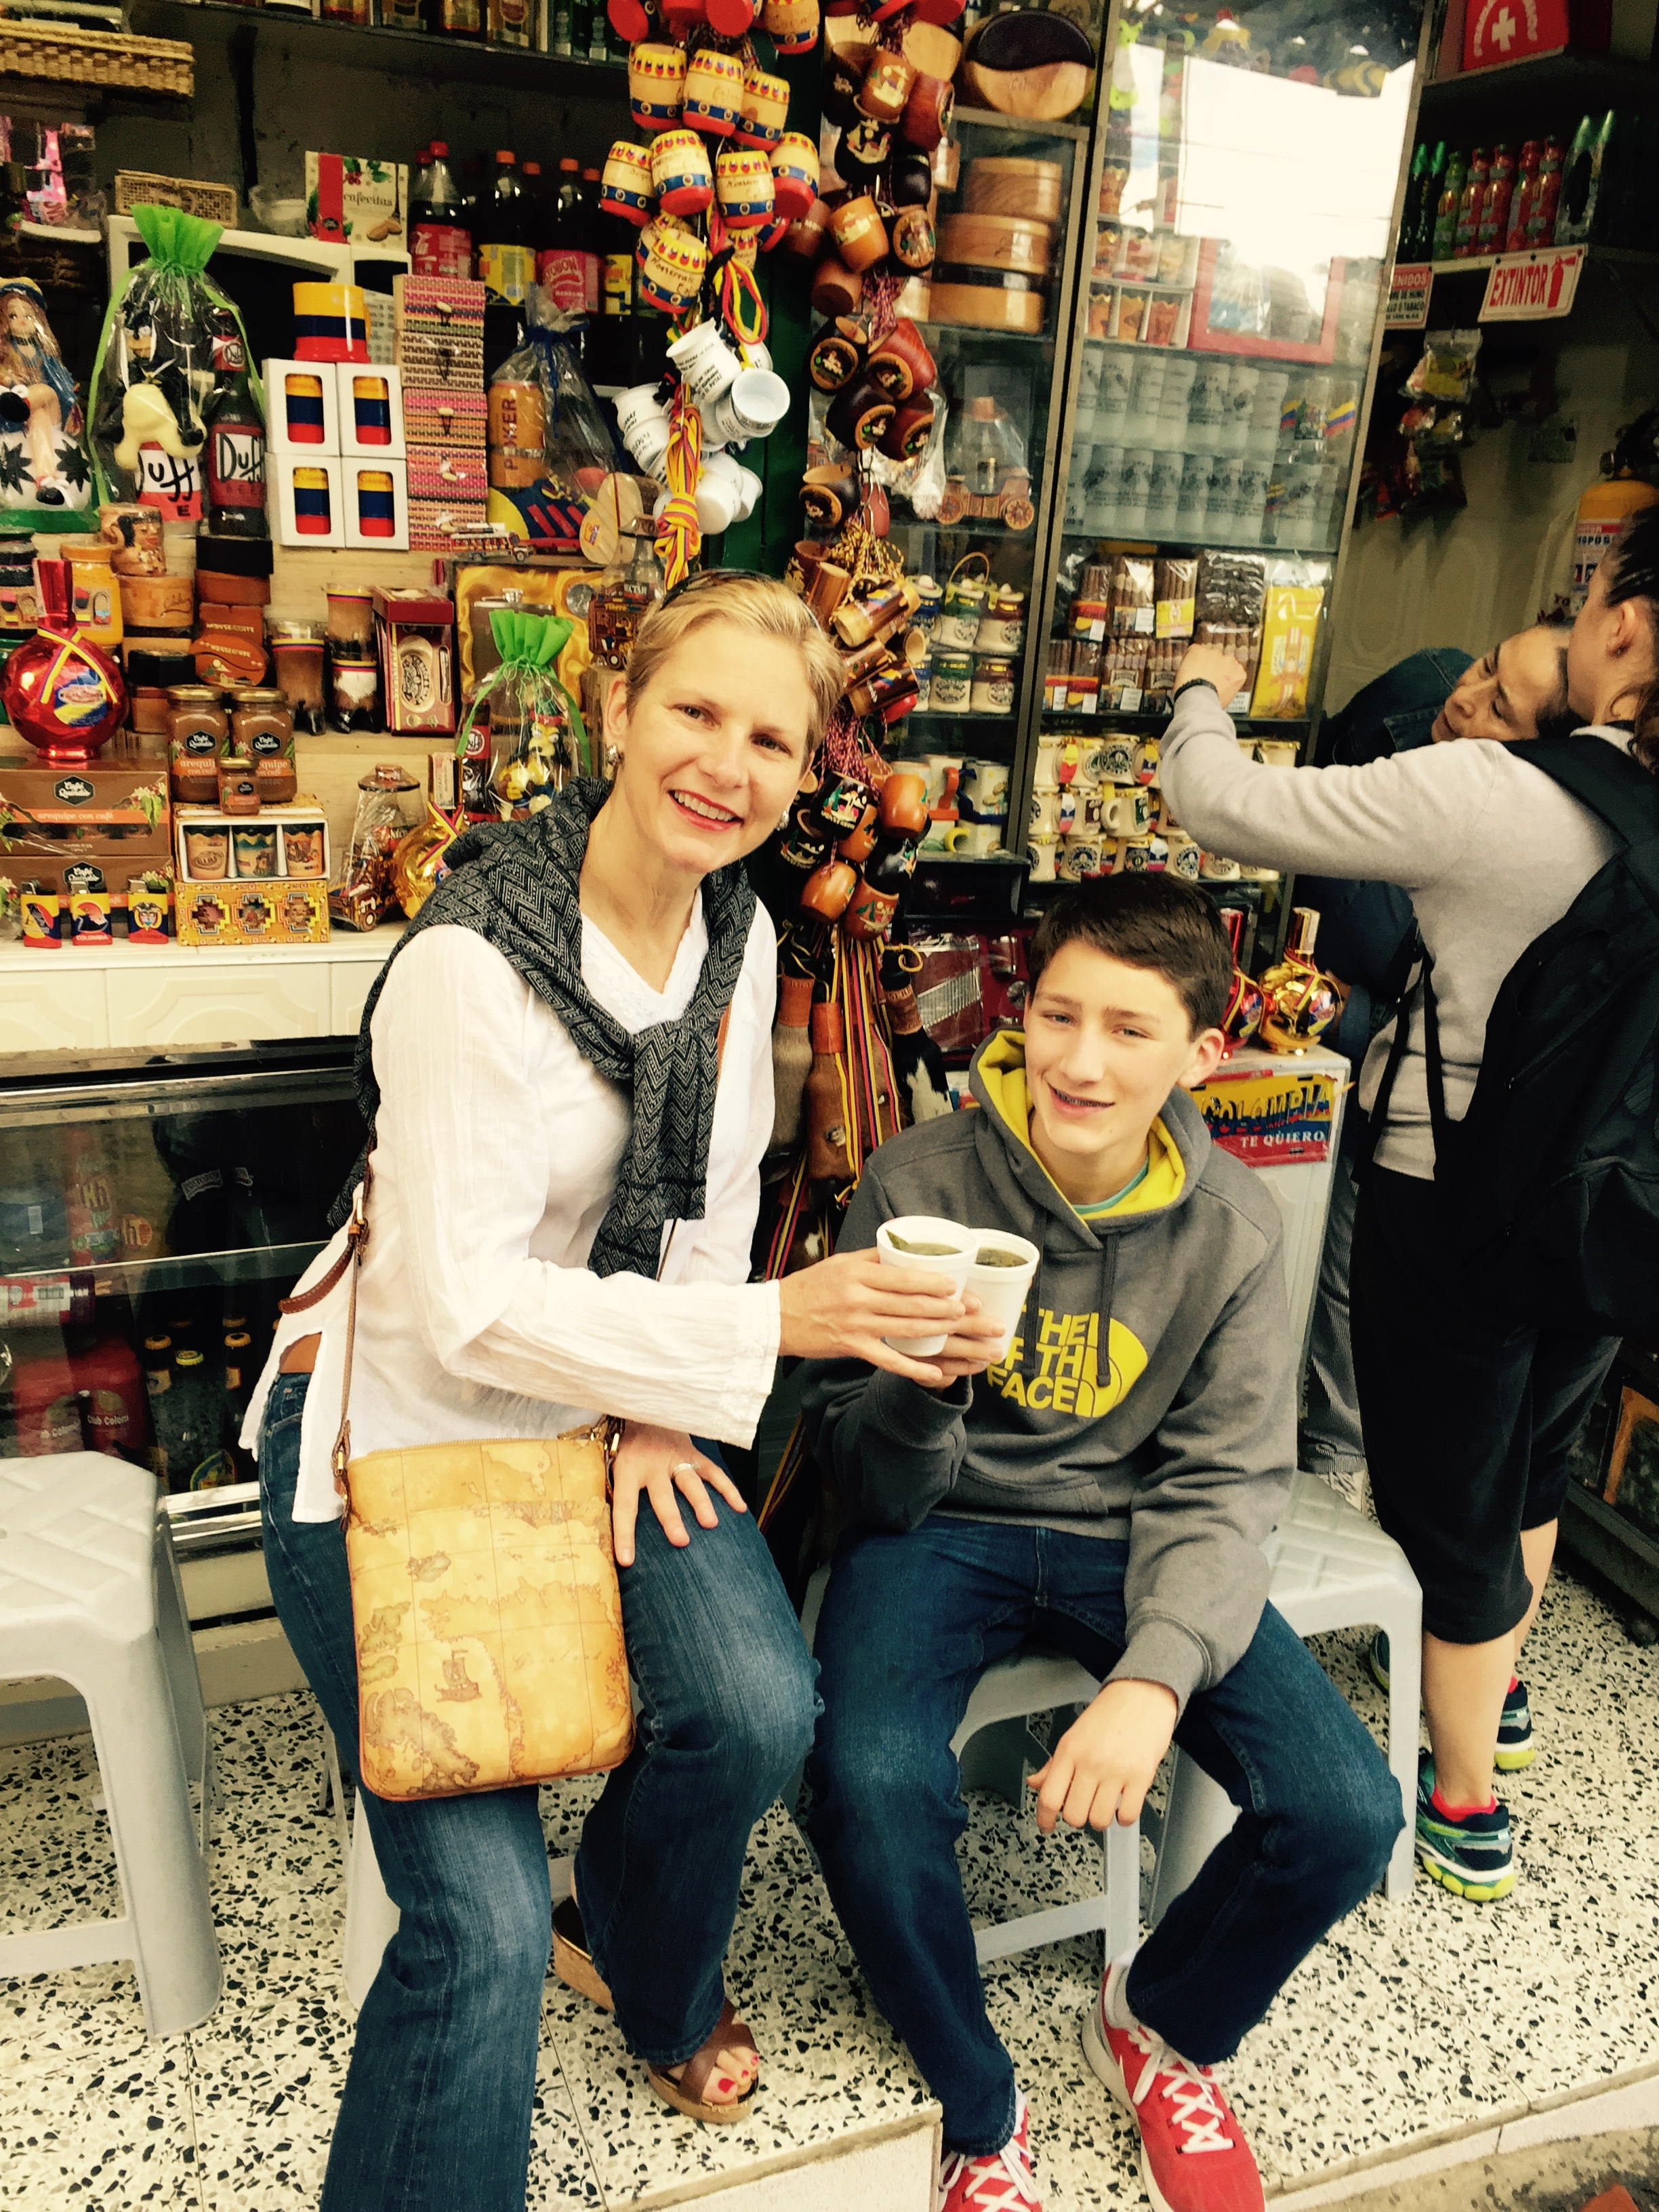 Drinking Mate at a Market in Bogota, Colombia